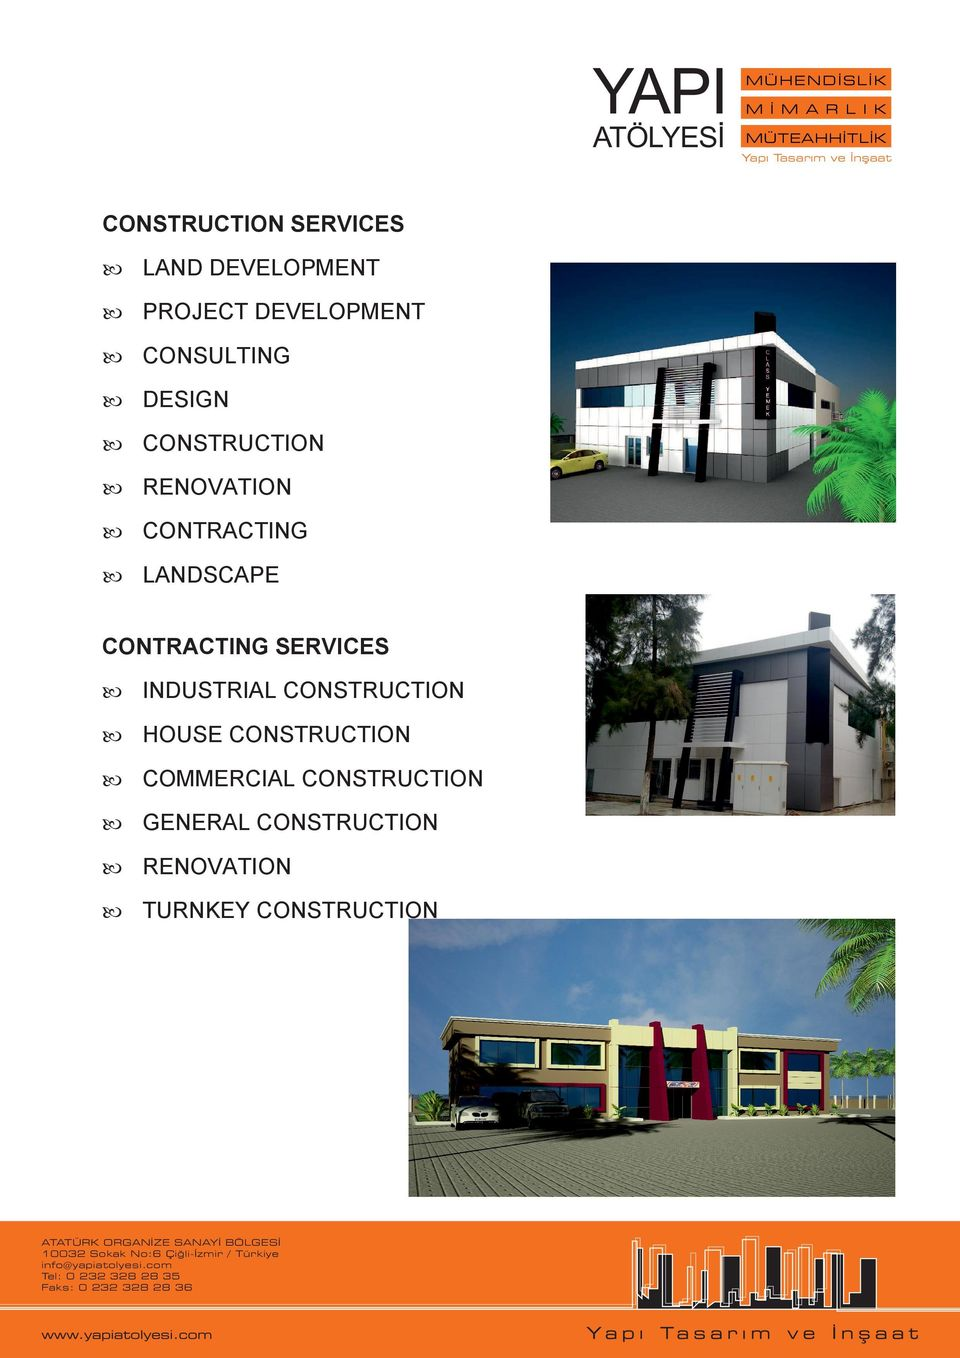 CONTRACTING SERVICES INDUSTRIAL CONSTRUCTION HOUSE CONSTRUCTION